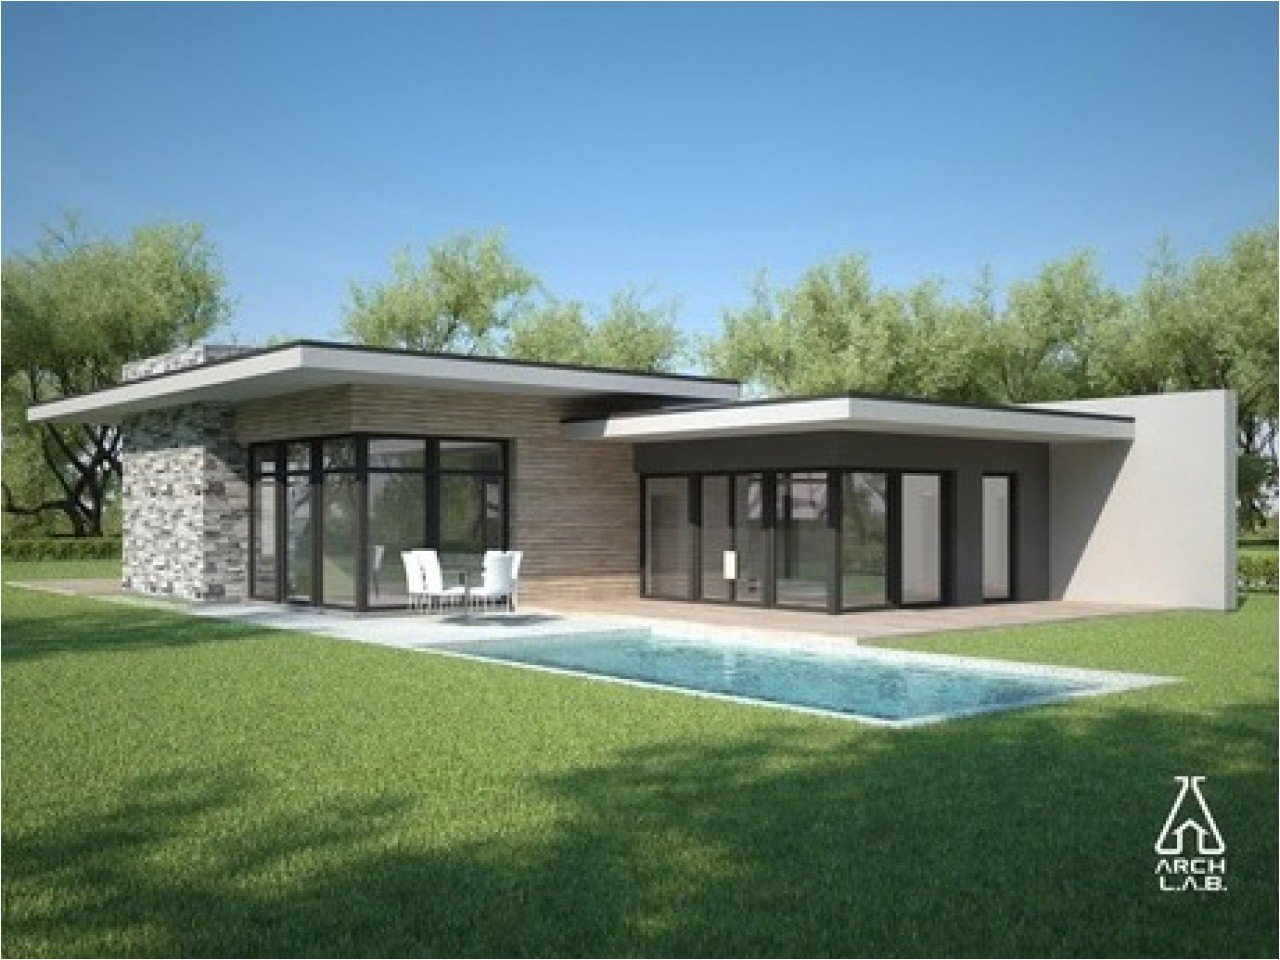 4f60c1f3fac38013 flat roof style homes flat roof modern house plans one story